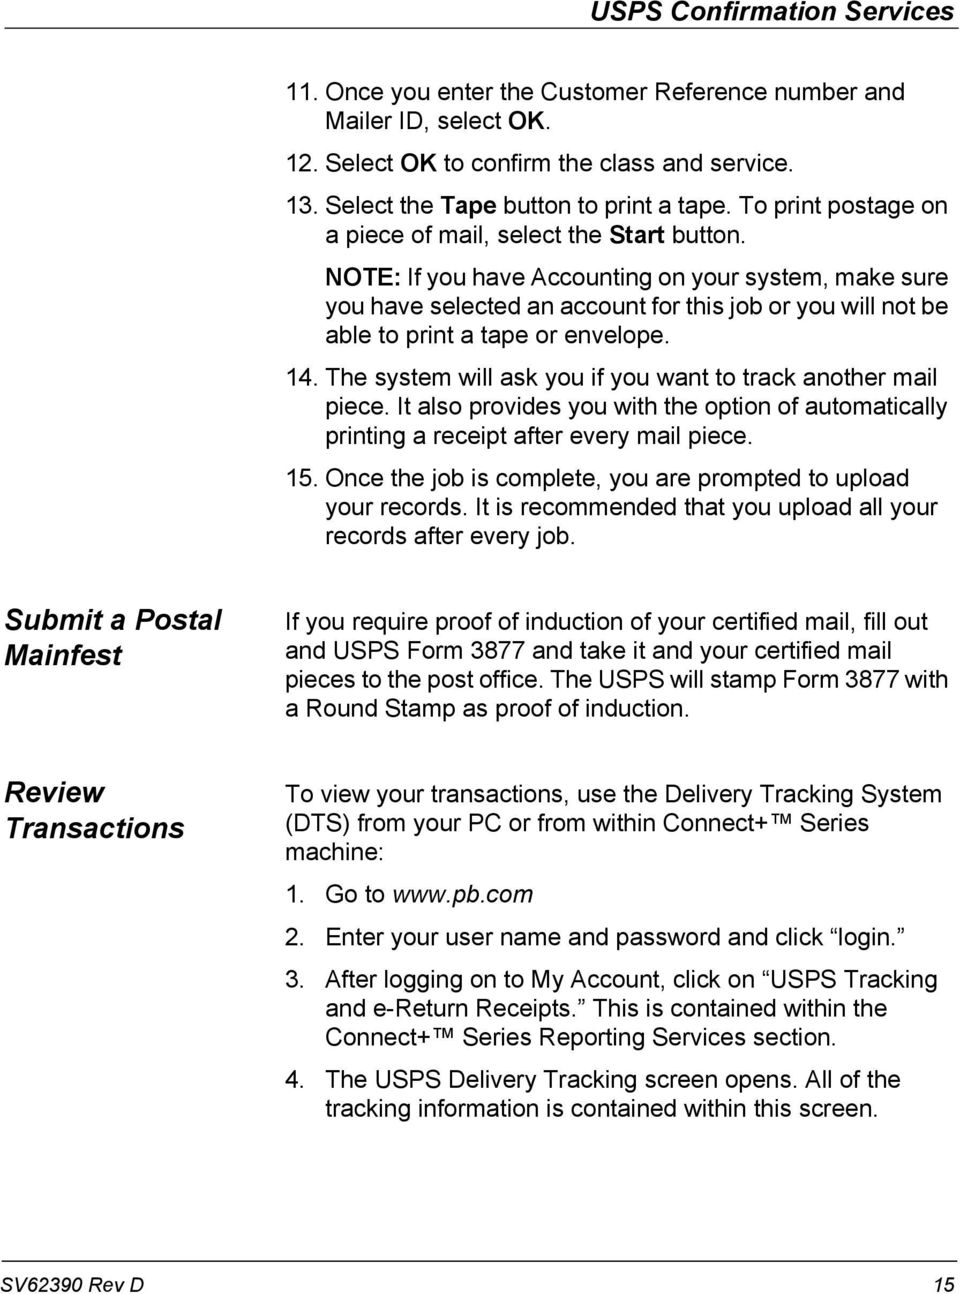 Operator Guide  Connect+ Series USPS Confirmation Services - PDF